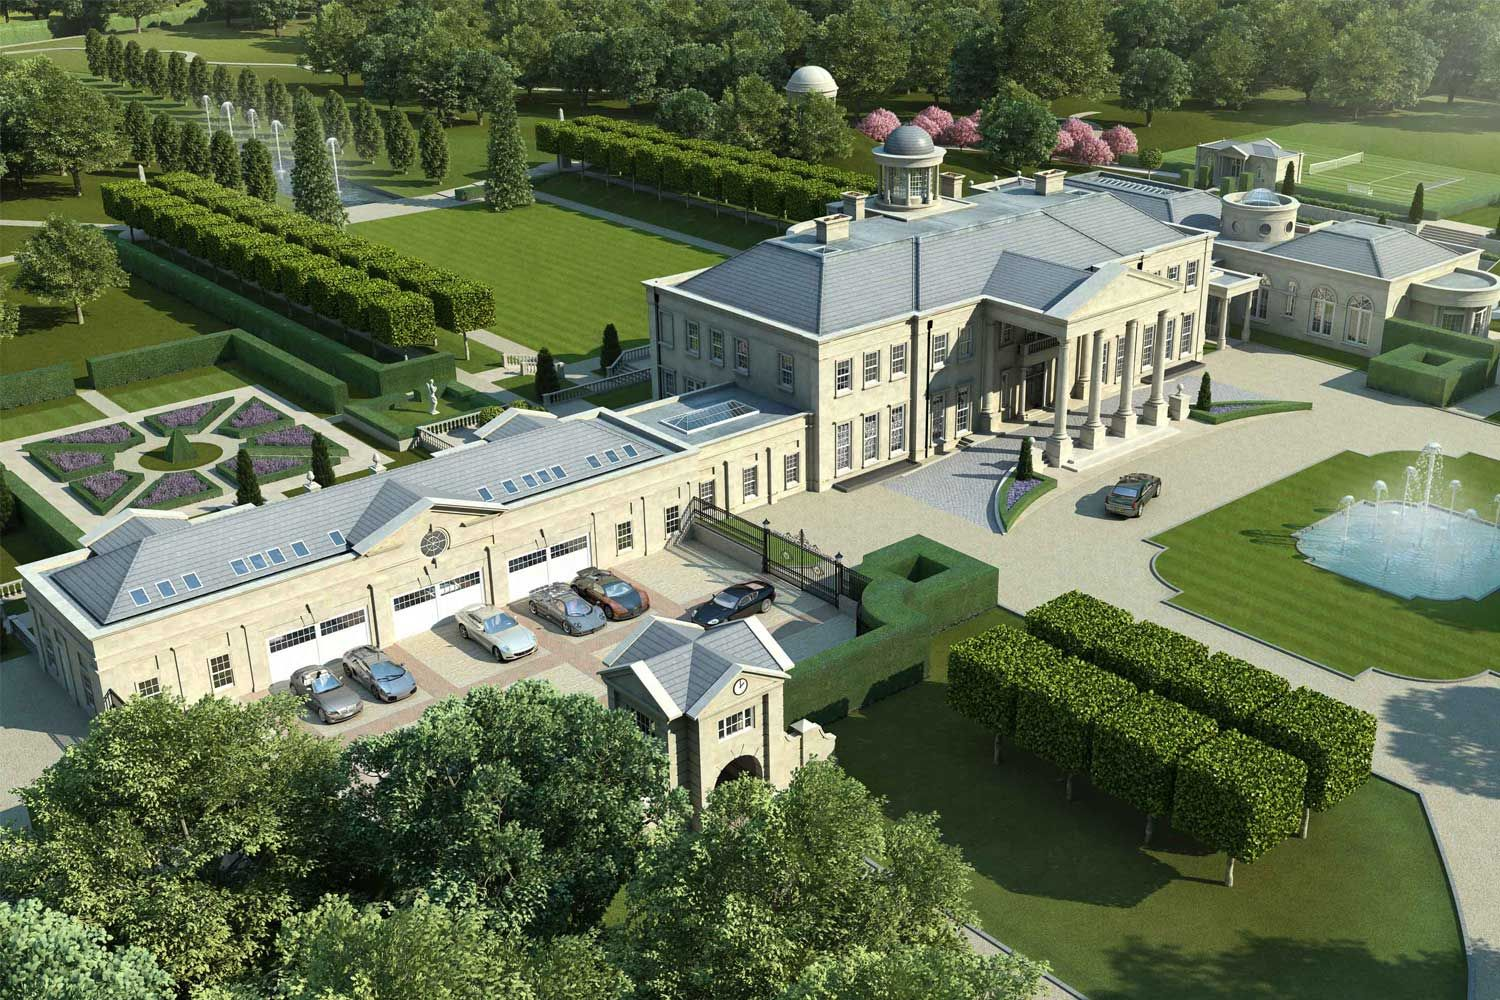 Artist impression of the side view of Windlesham House